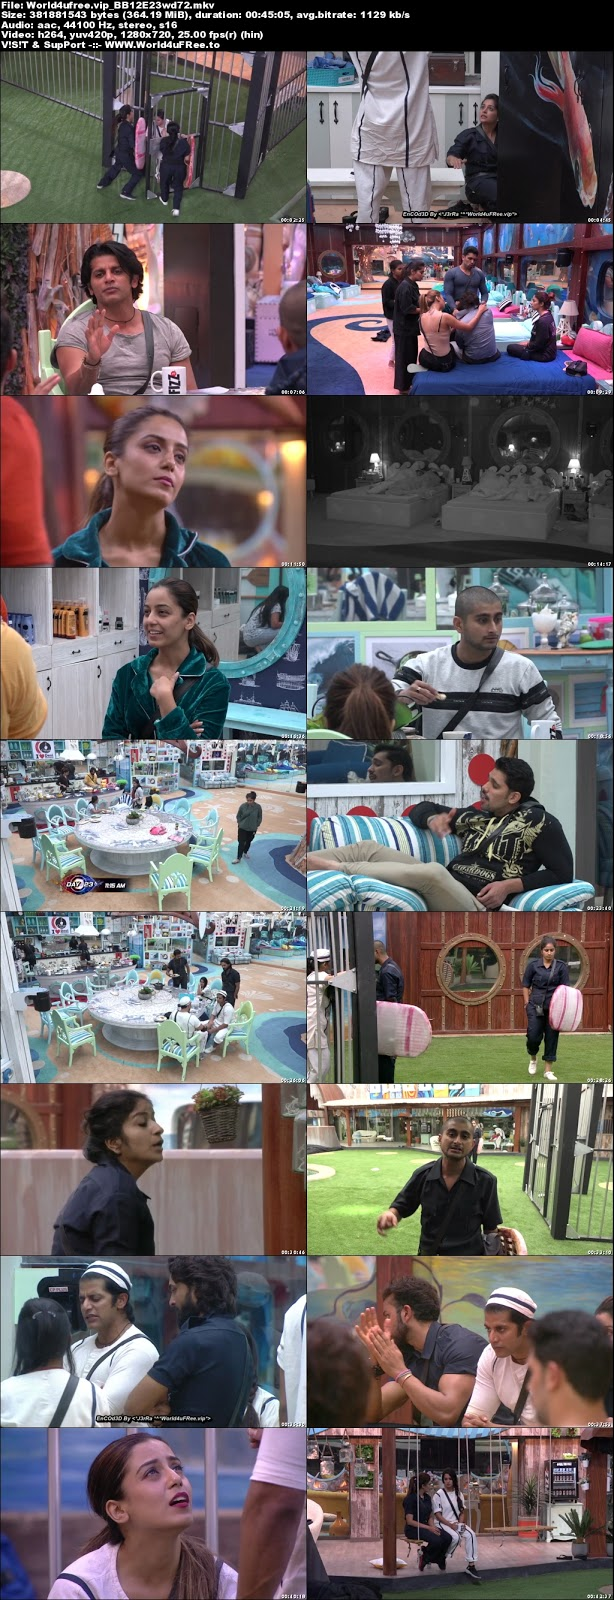 Bigg Boss 12 Episode 23 09 October 2018 720p WEBRip Download world4ufree.vip tv show Episode 23 09 October 2018 world4ufree.vip 300mb 250mb 300mb compressed small size free download or watch online at world4ufree.vip